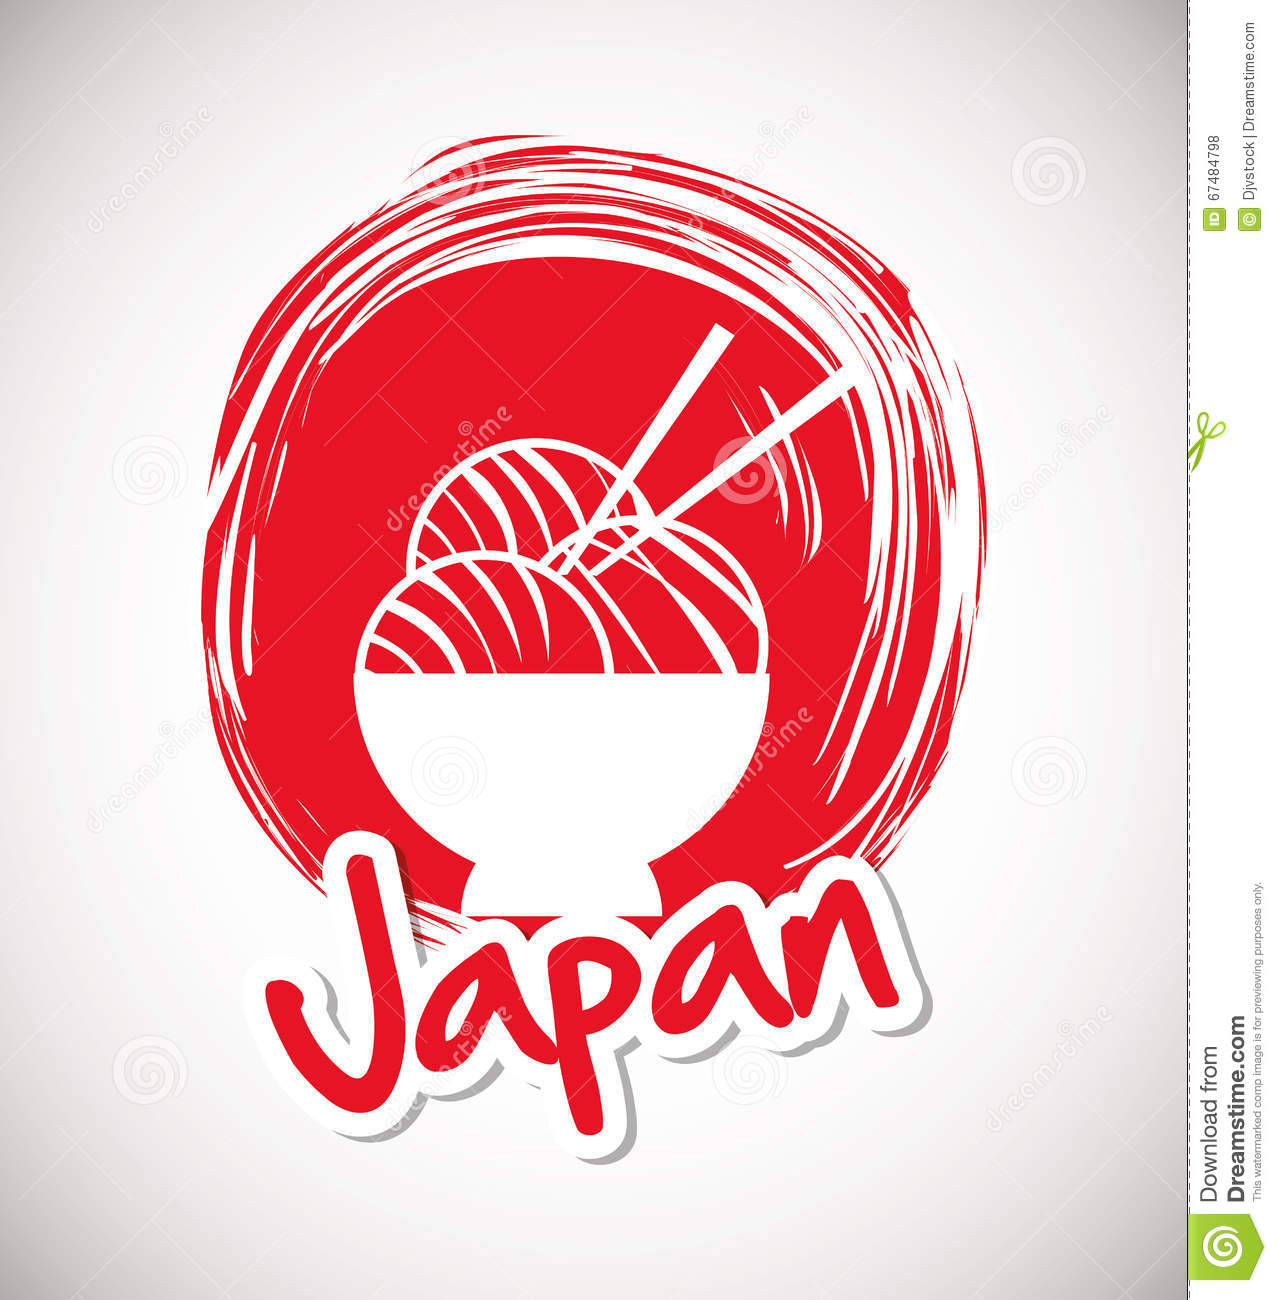 design and culture Japanese architecture into construction and design in japan and the millennium encompassed between the first cultural import and the.